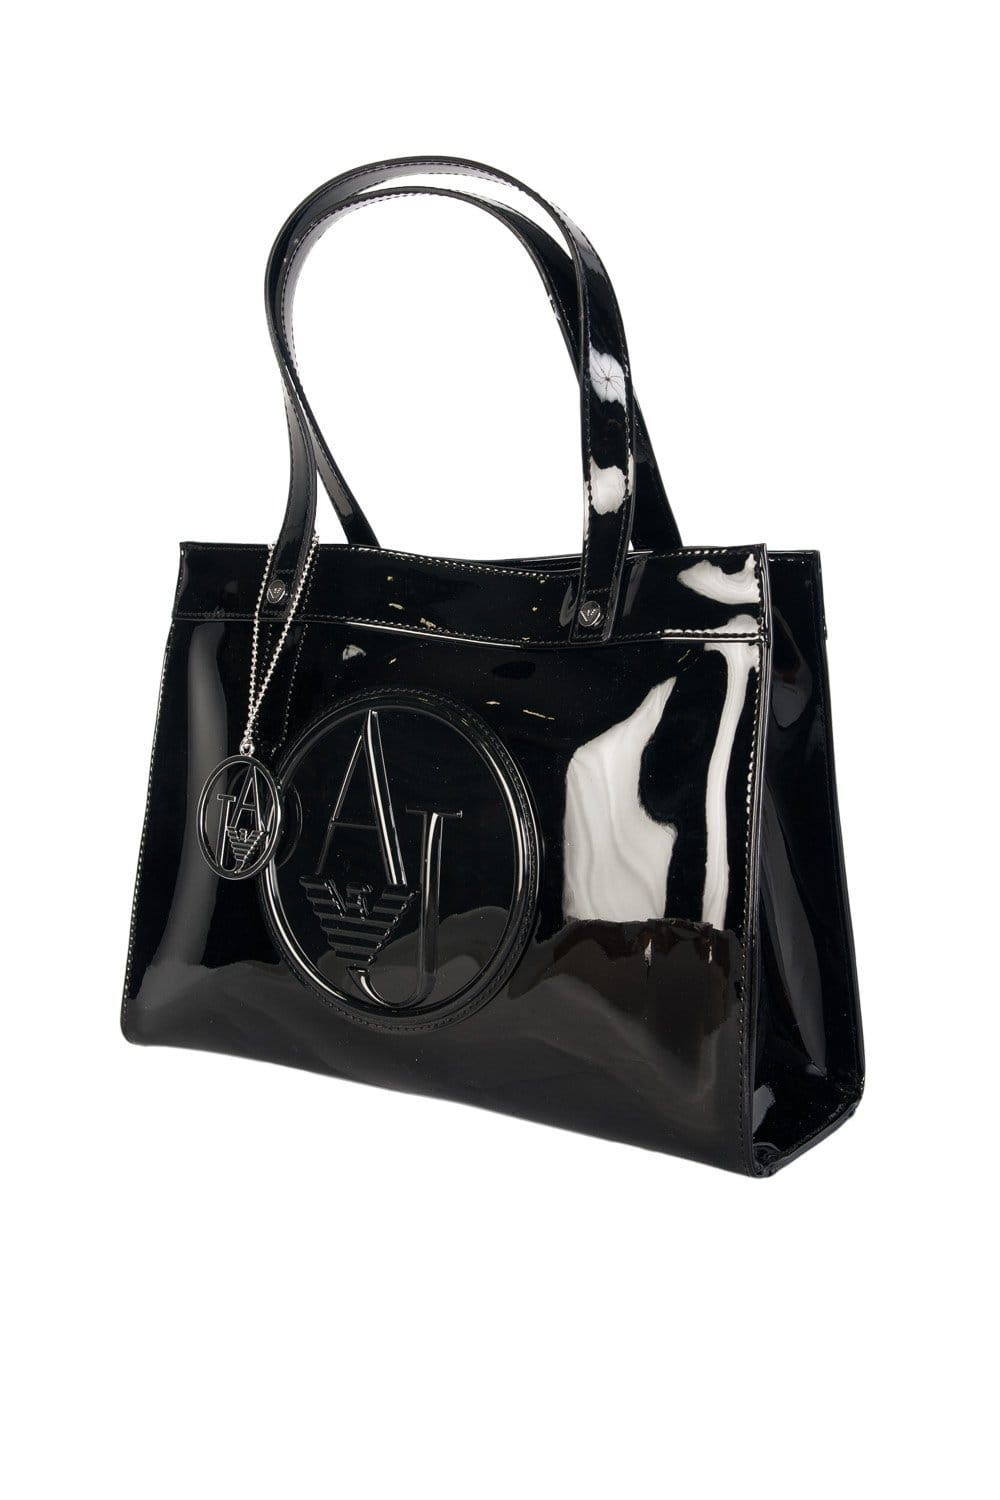 5fe5fe11db21 Armani Jeans Ladies Faux Patent Leather Tote Bag in Black and Grey 0520ARJ